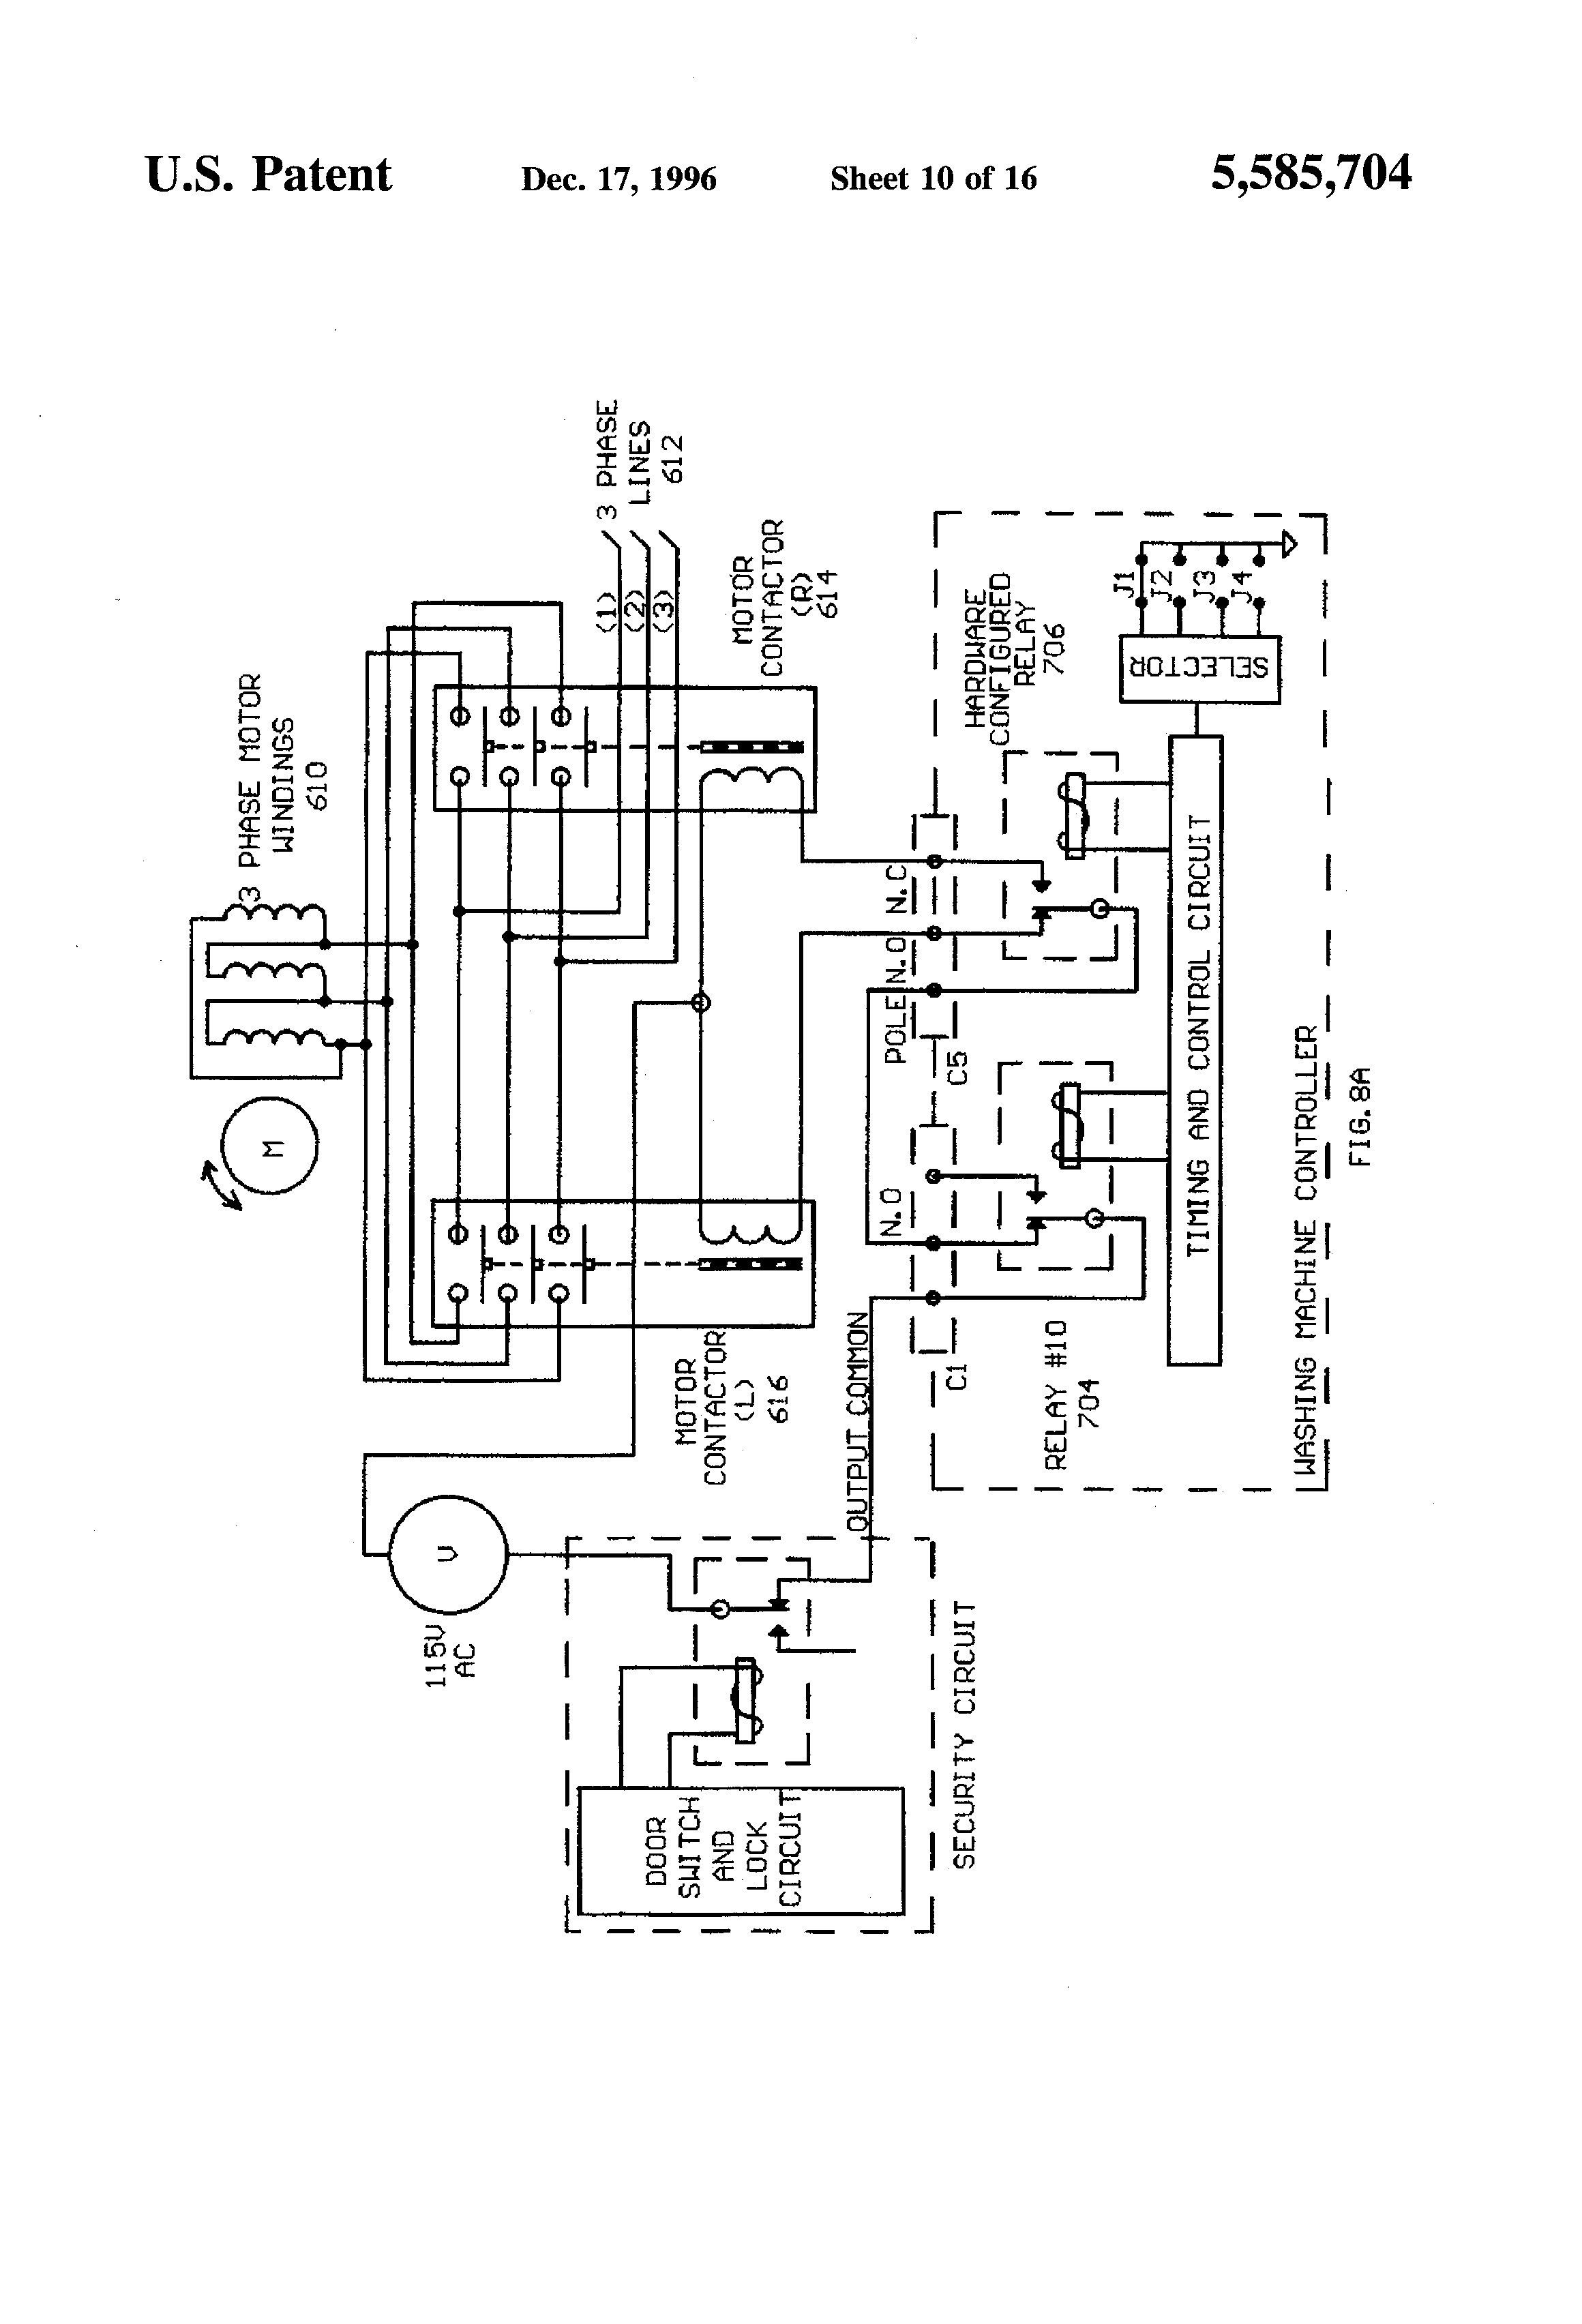 medium resolution of wiring diagram car wash diagram diagramtemplate diagramsamplewiring diagram car wash diagram diagramtemplate diagramsample